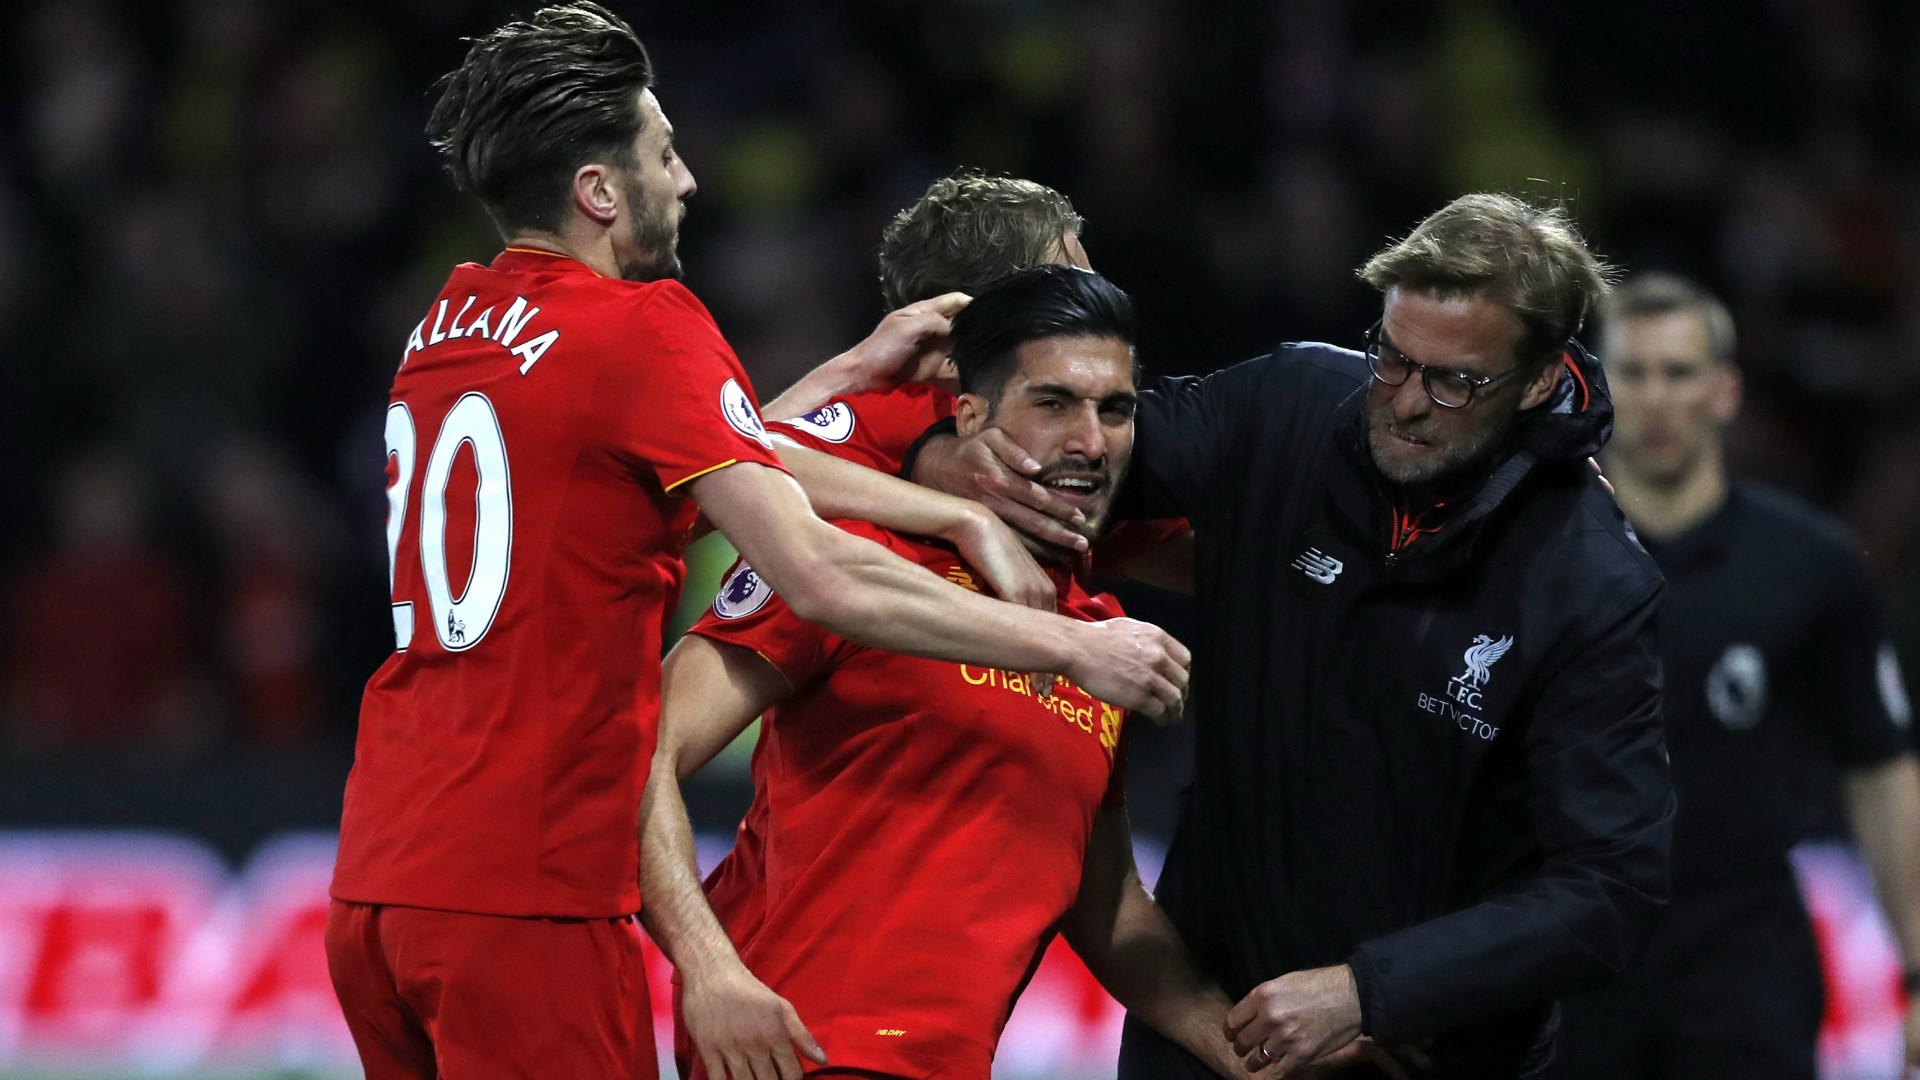 HD Emre Can Liverpool celebrate Klopp Lallana